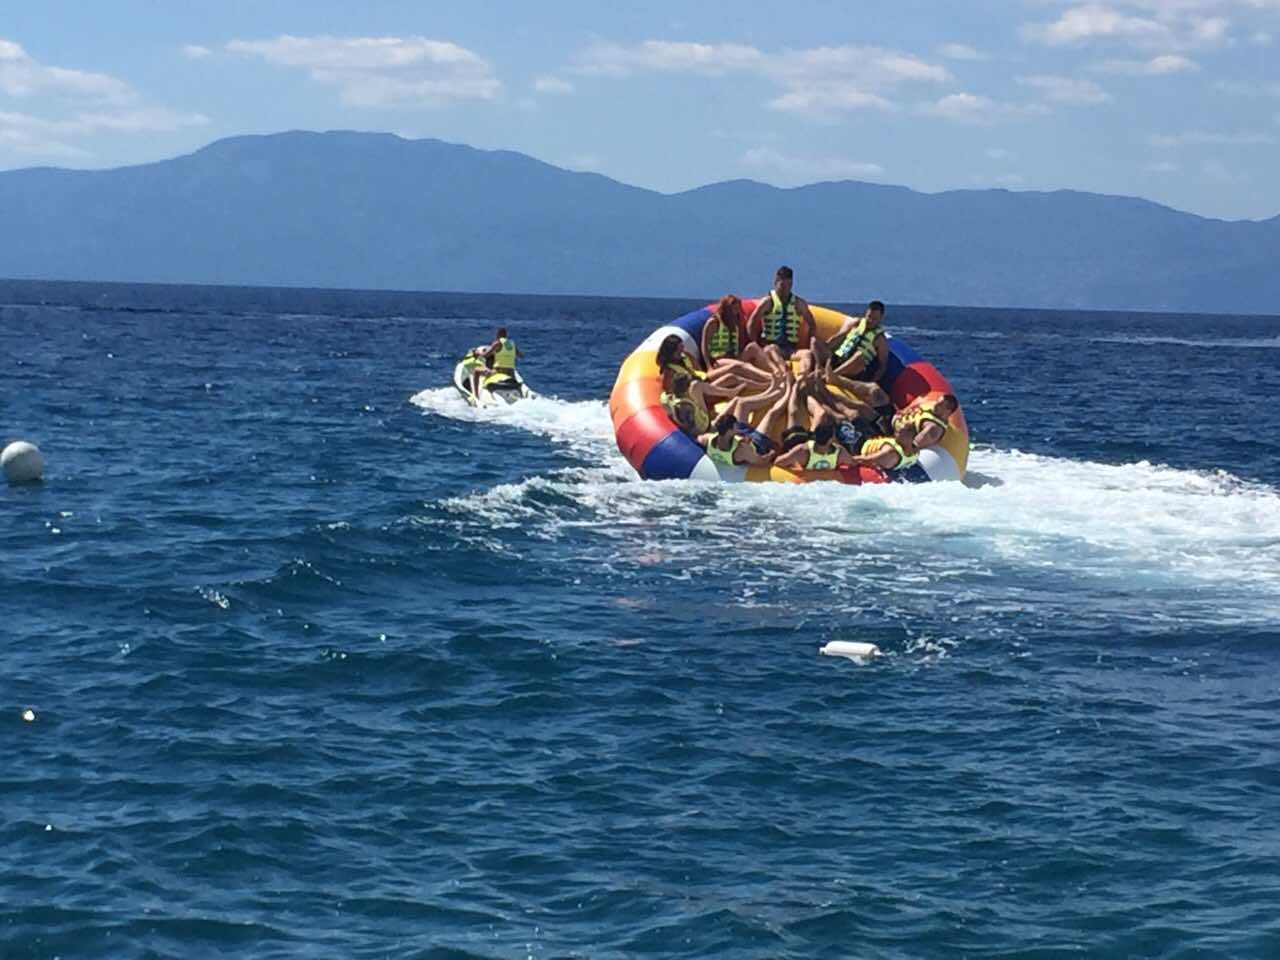 Twister, Water sports u Njivicama na otoku Krku